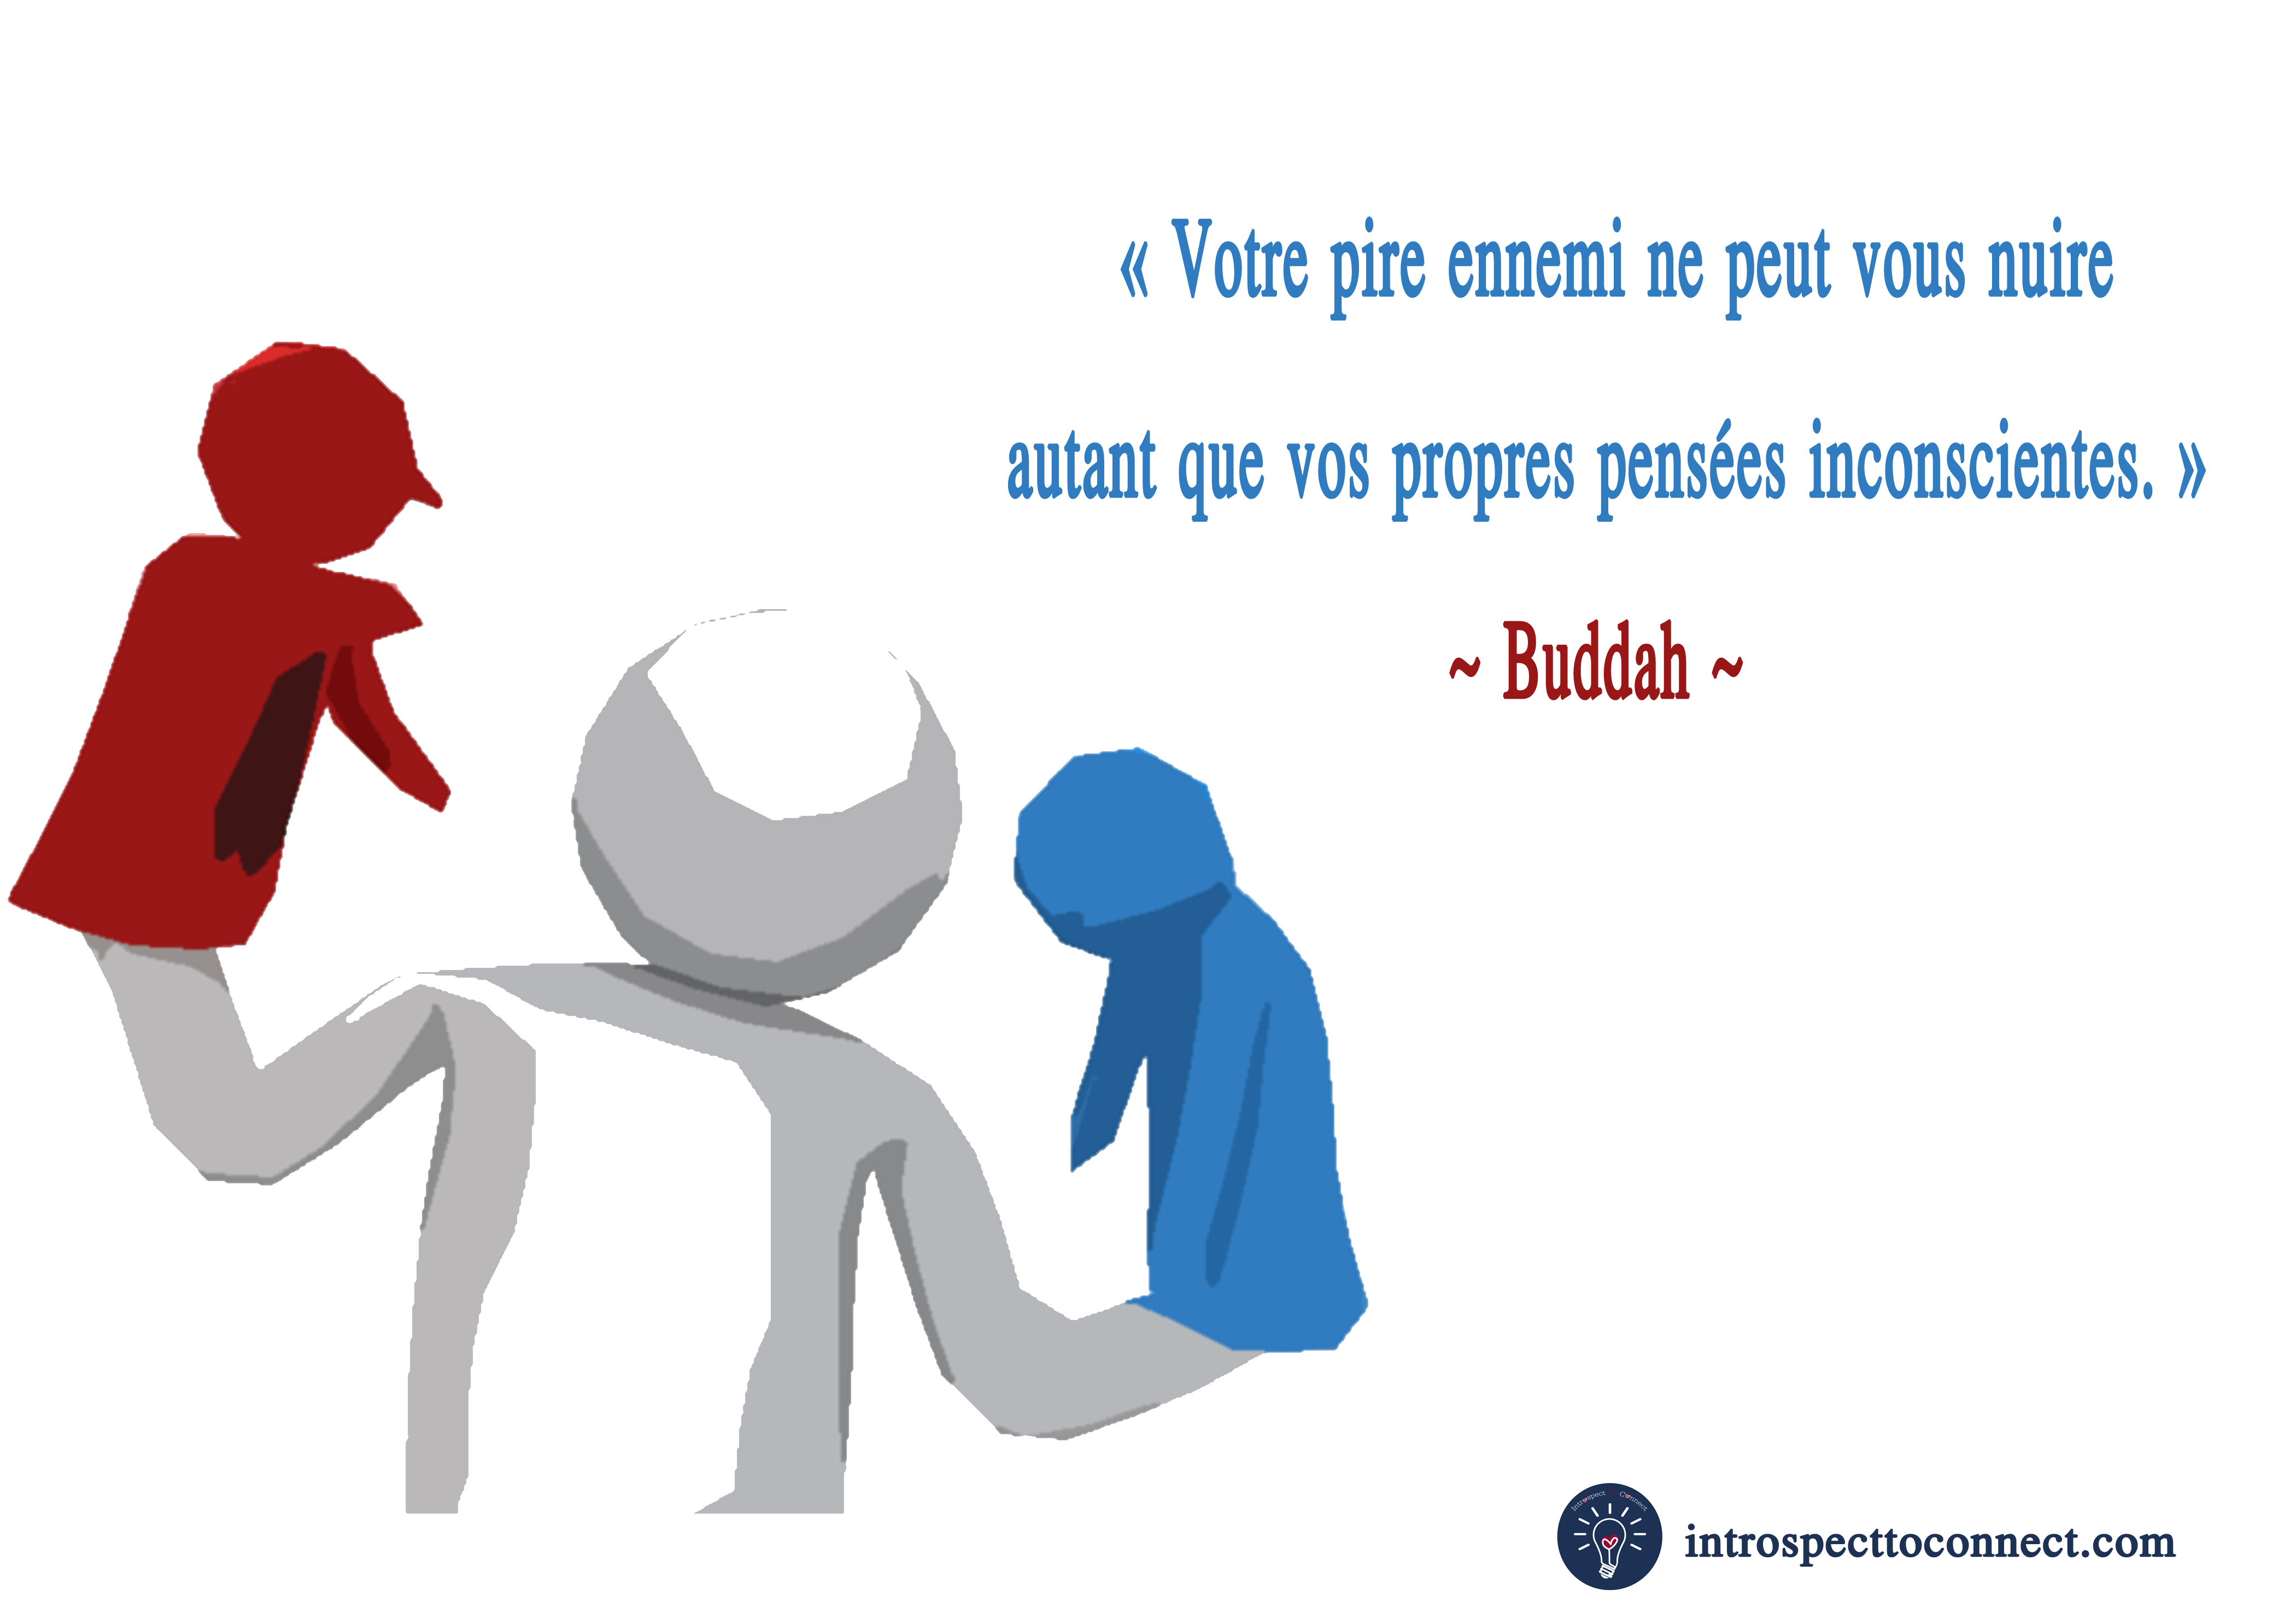 buddah citation copie 2